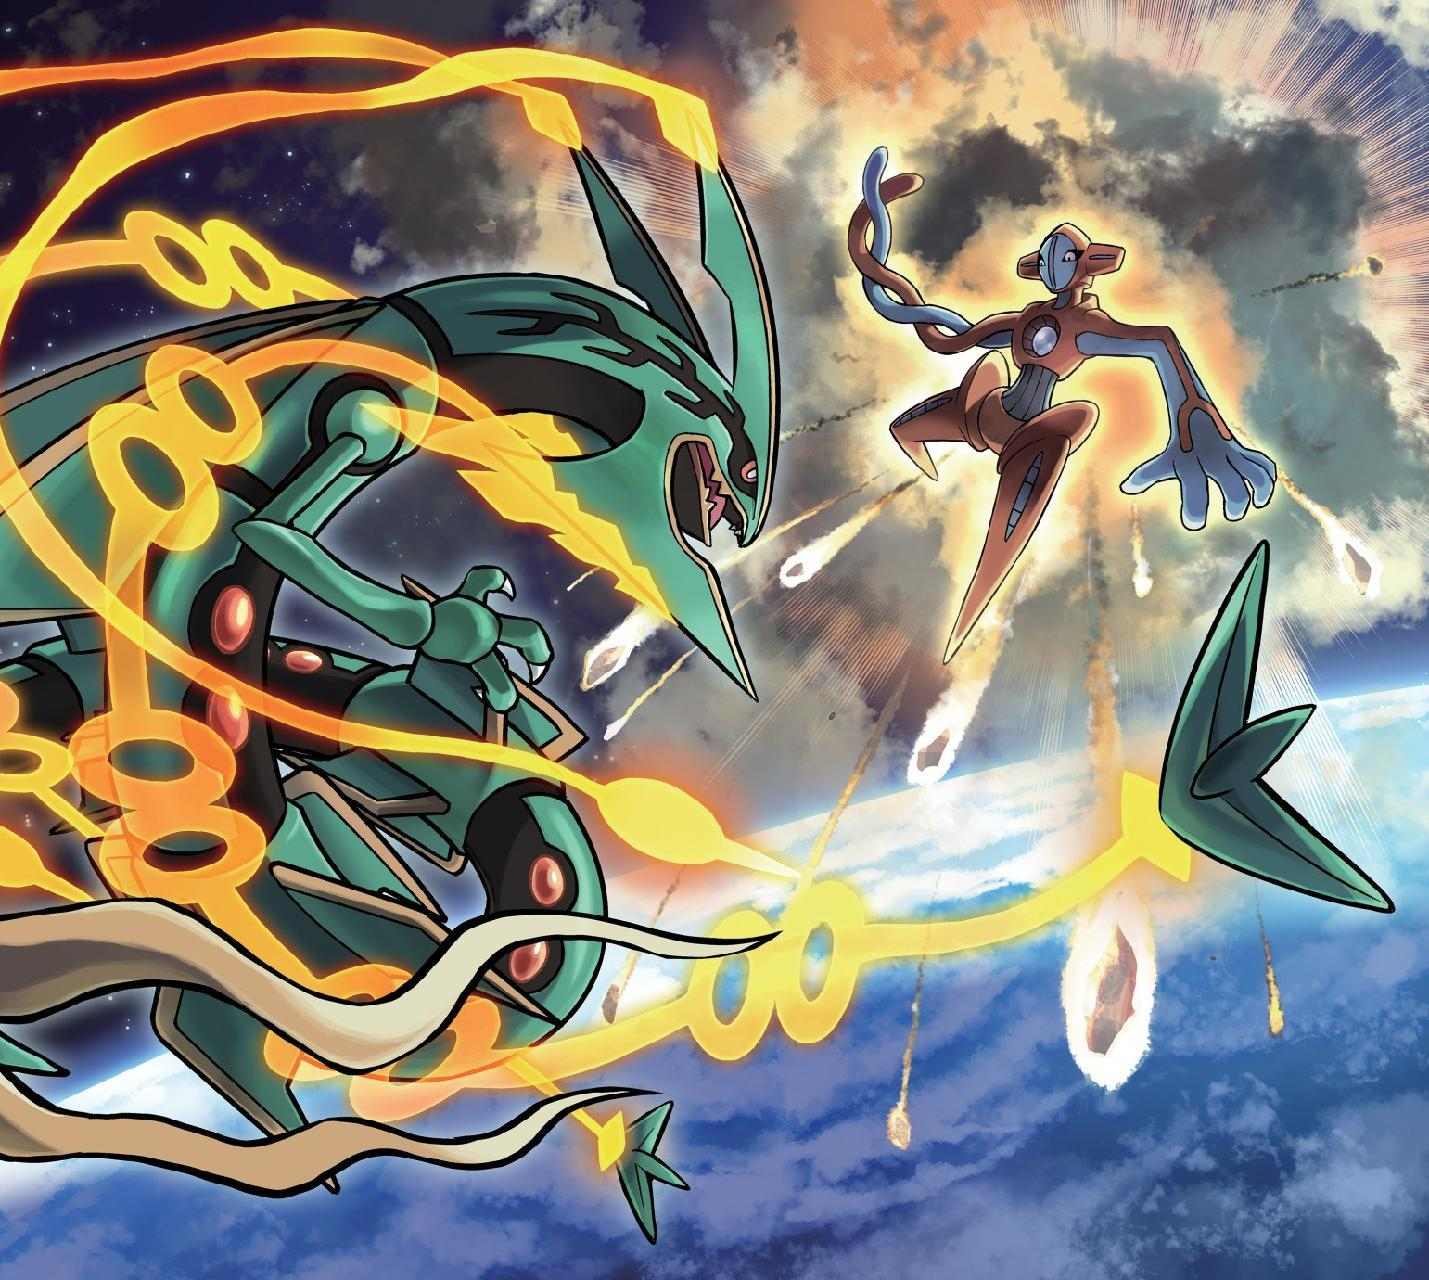 Rayquaza vs Deoxys wallpapers by JohnnyAmezcua • ZEDGE™